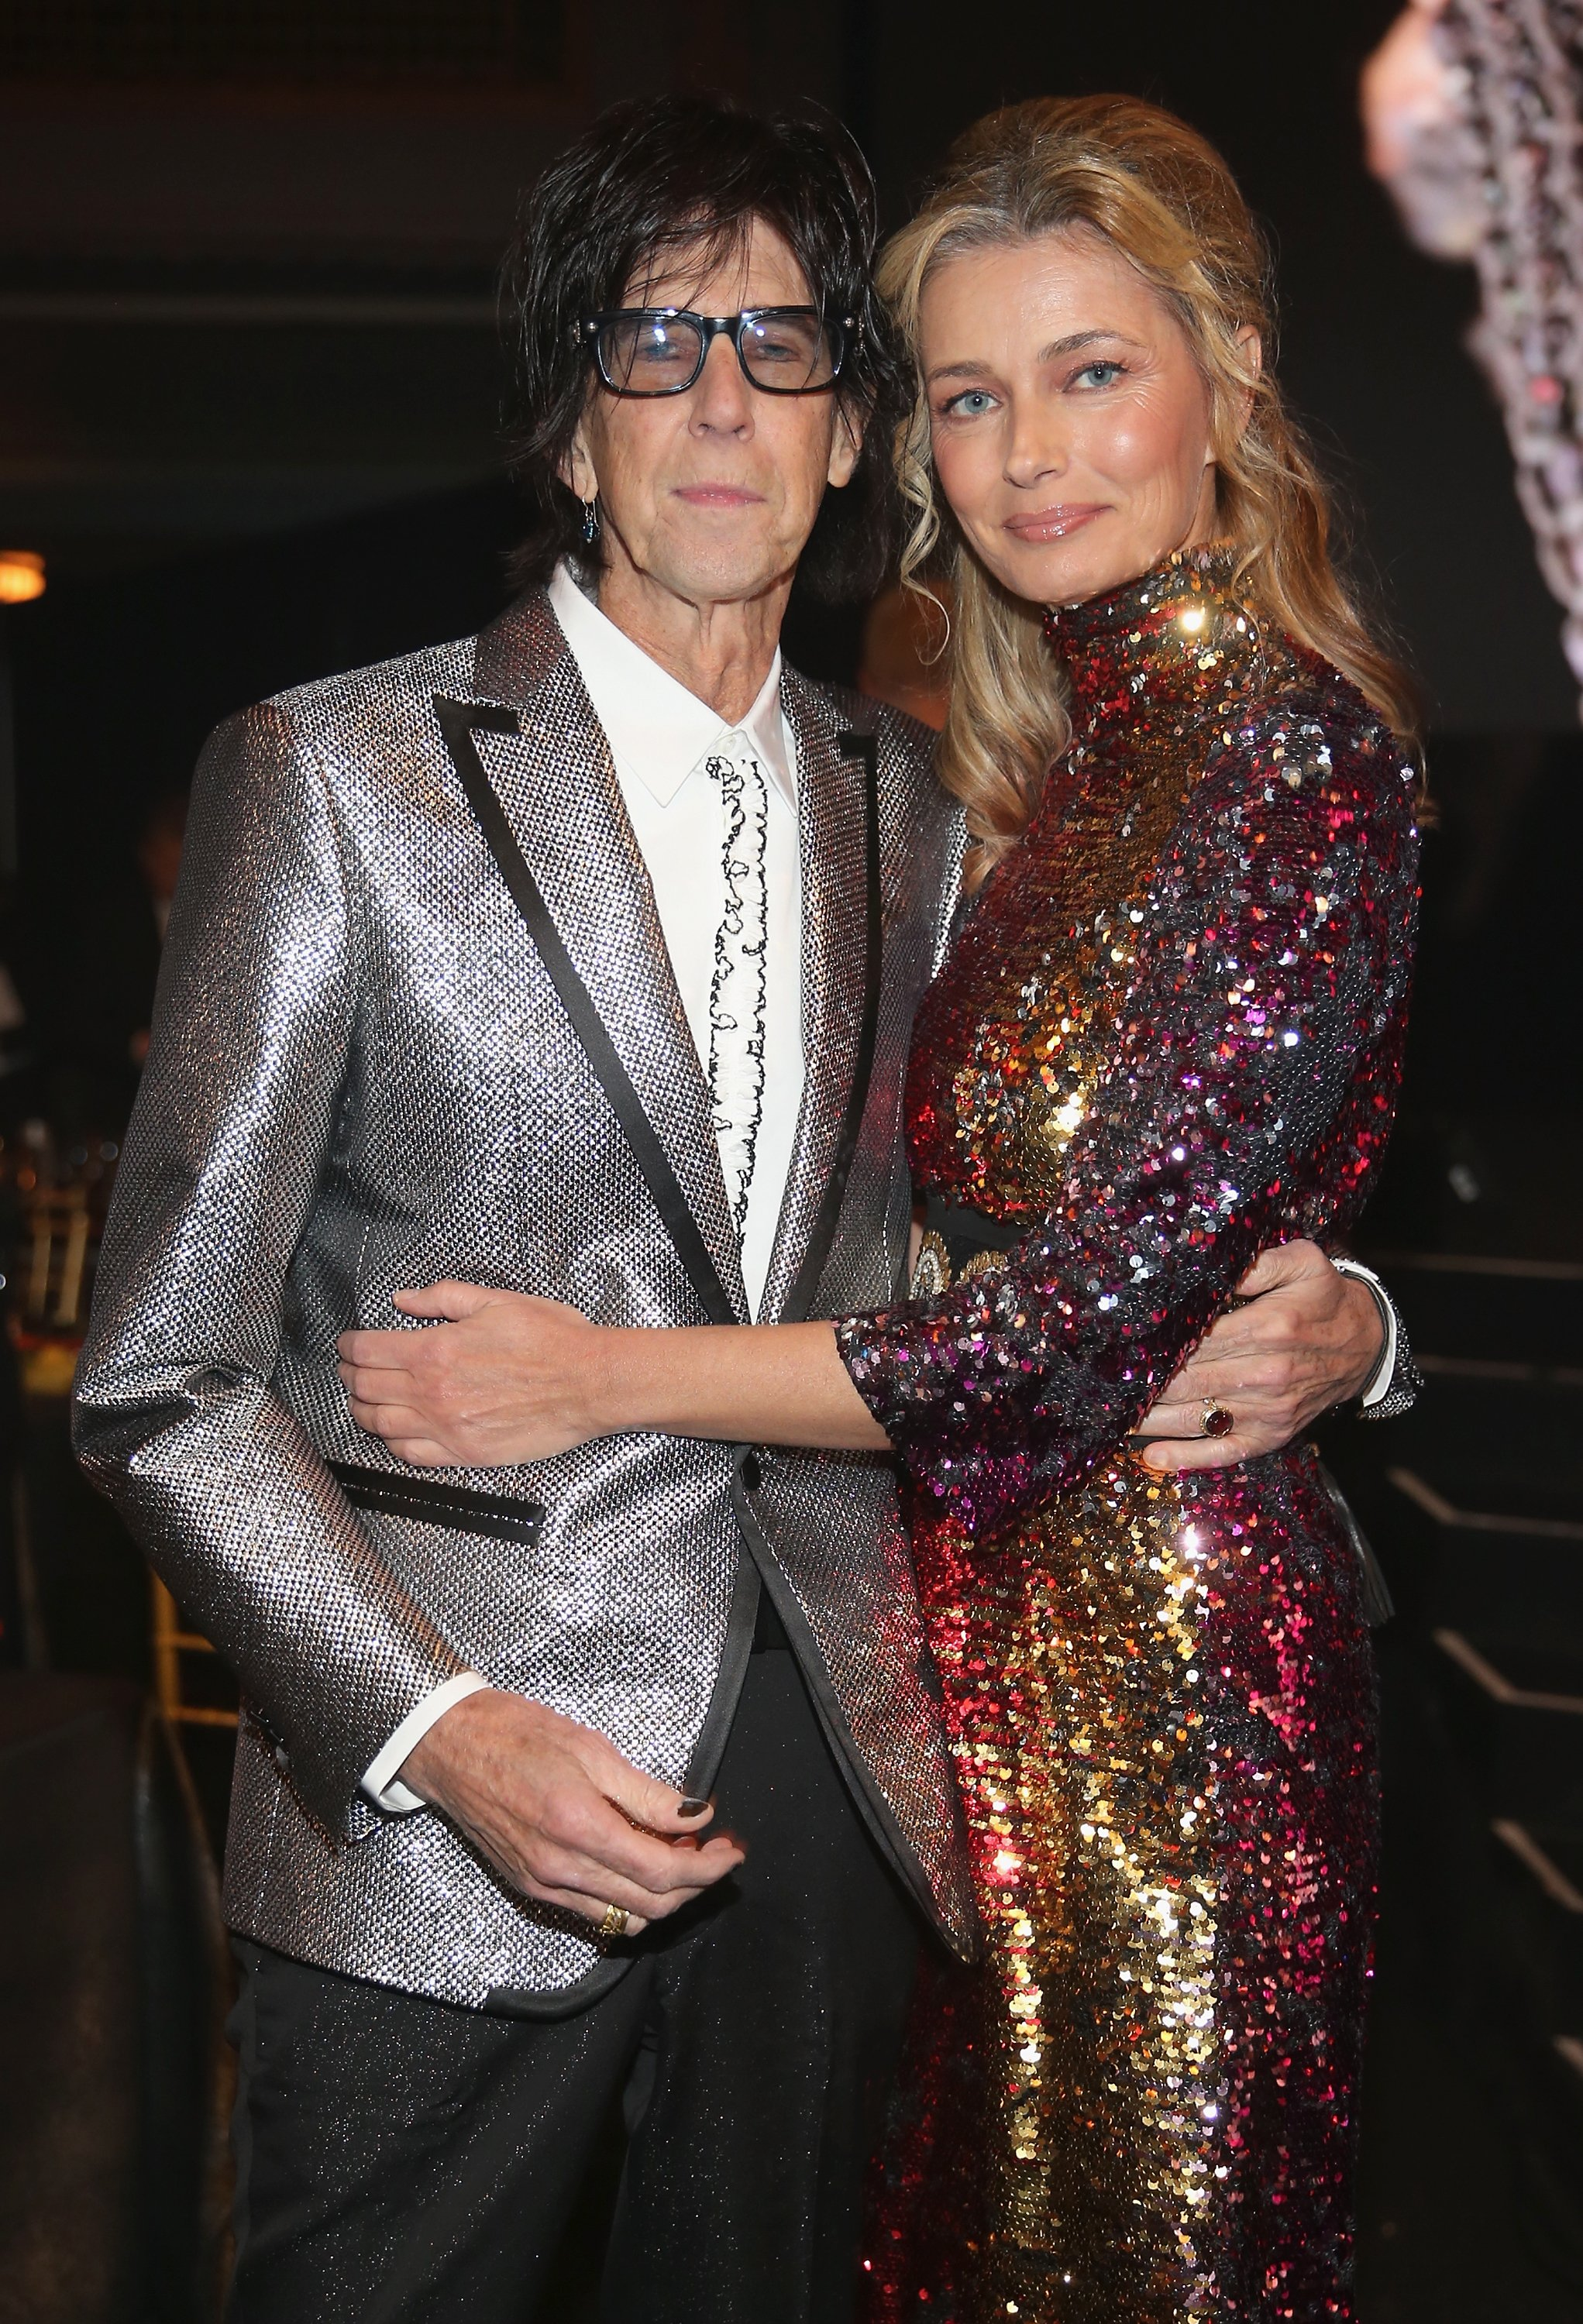 Paulina Porizkova and Ric Ocasek pictured at the 33rd Annual Rock & Roll Hall of Fame Induction Ceremony, 2018, Cleveland, Ohio.   Photo: Getty Images